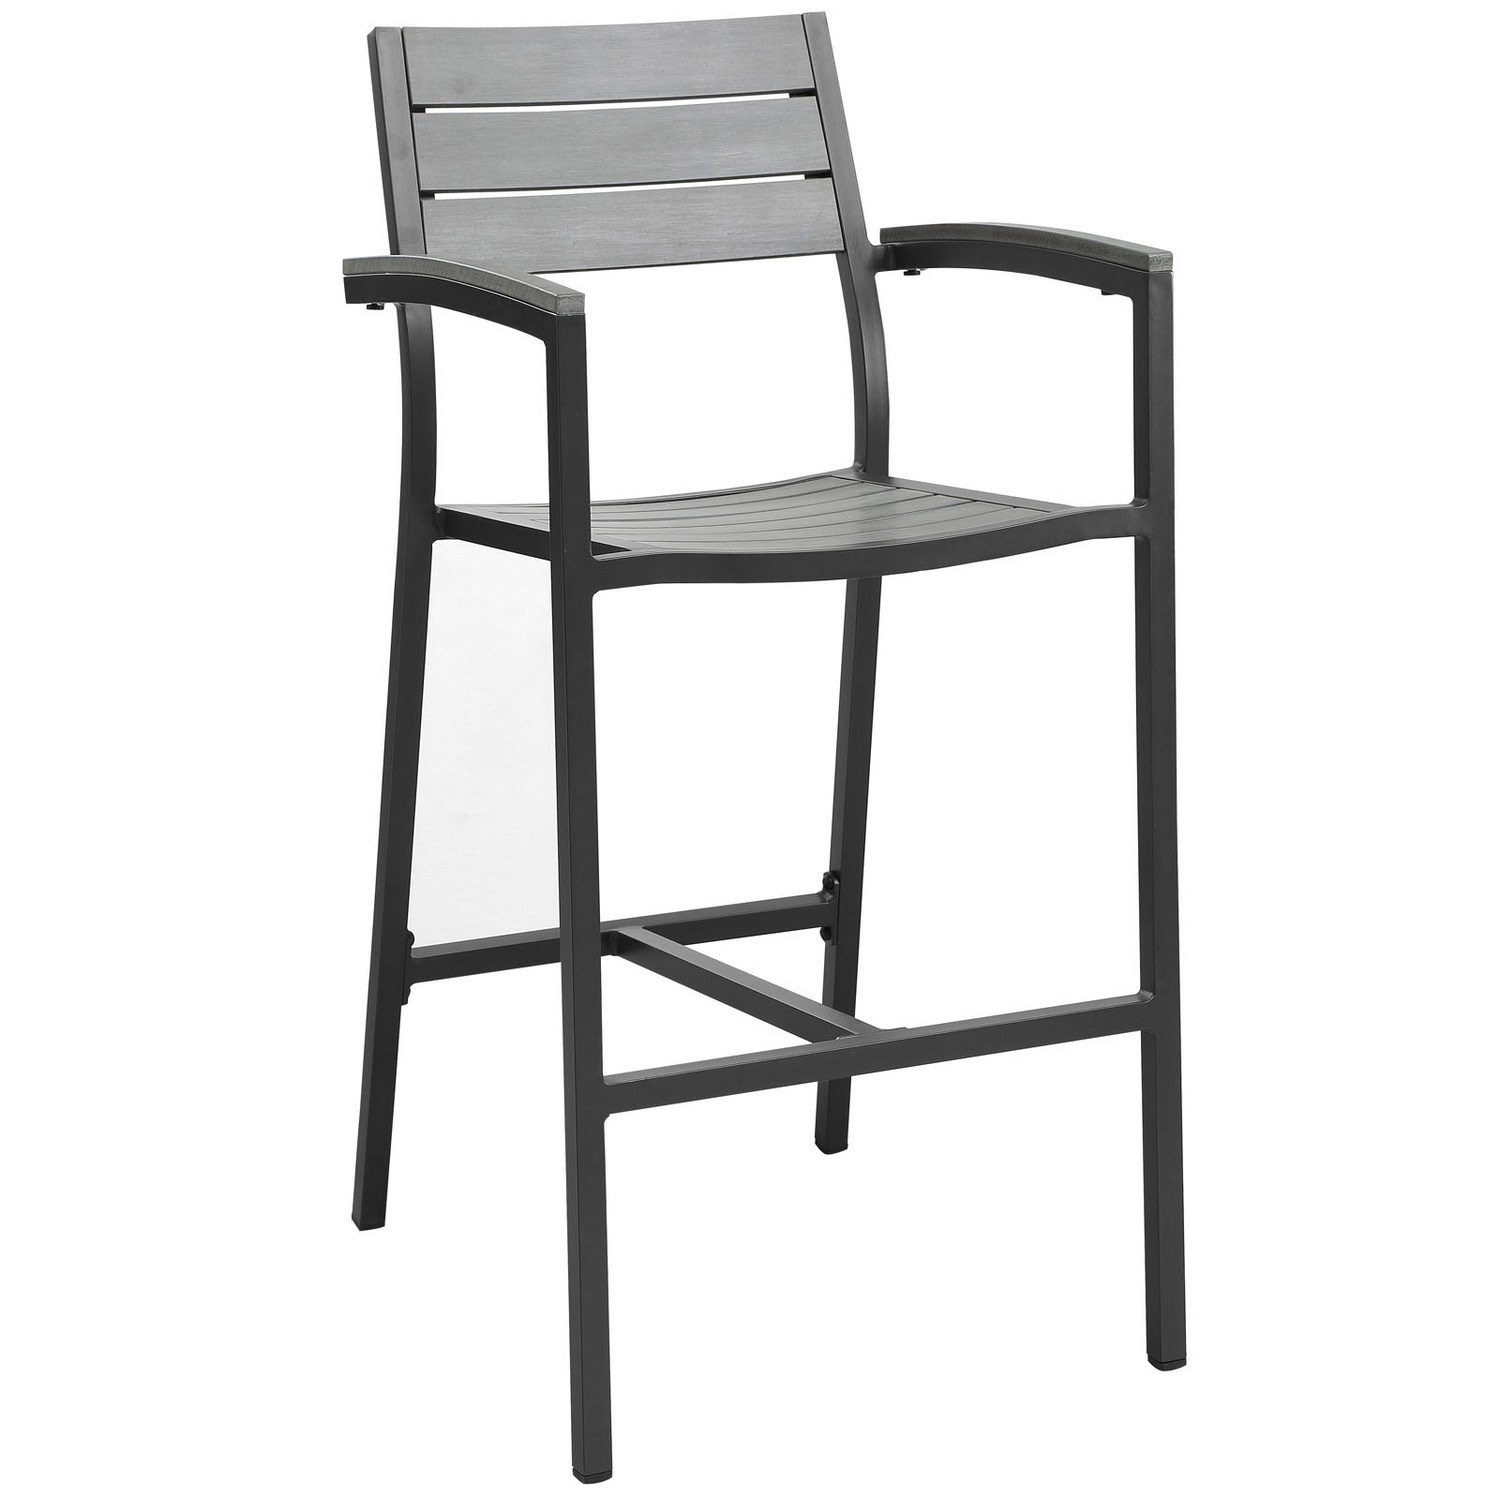 Modway Maine Outdoor Patio Bar Stool - Brown/Gray